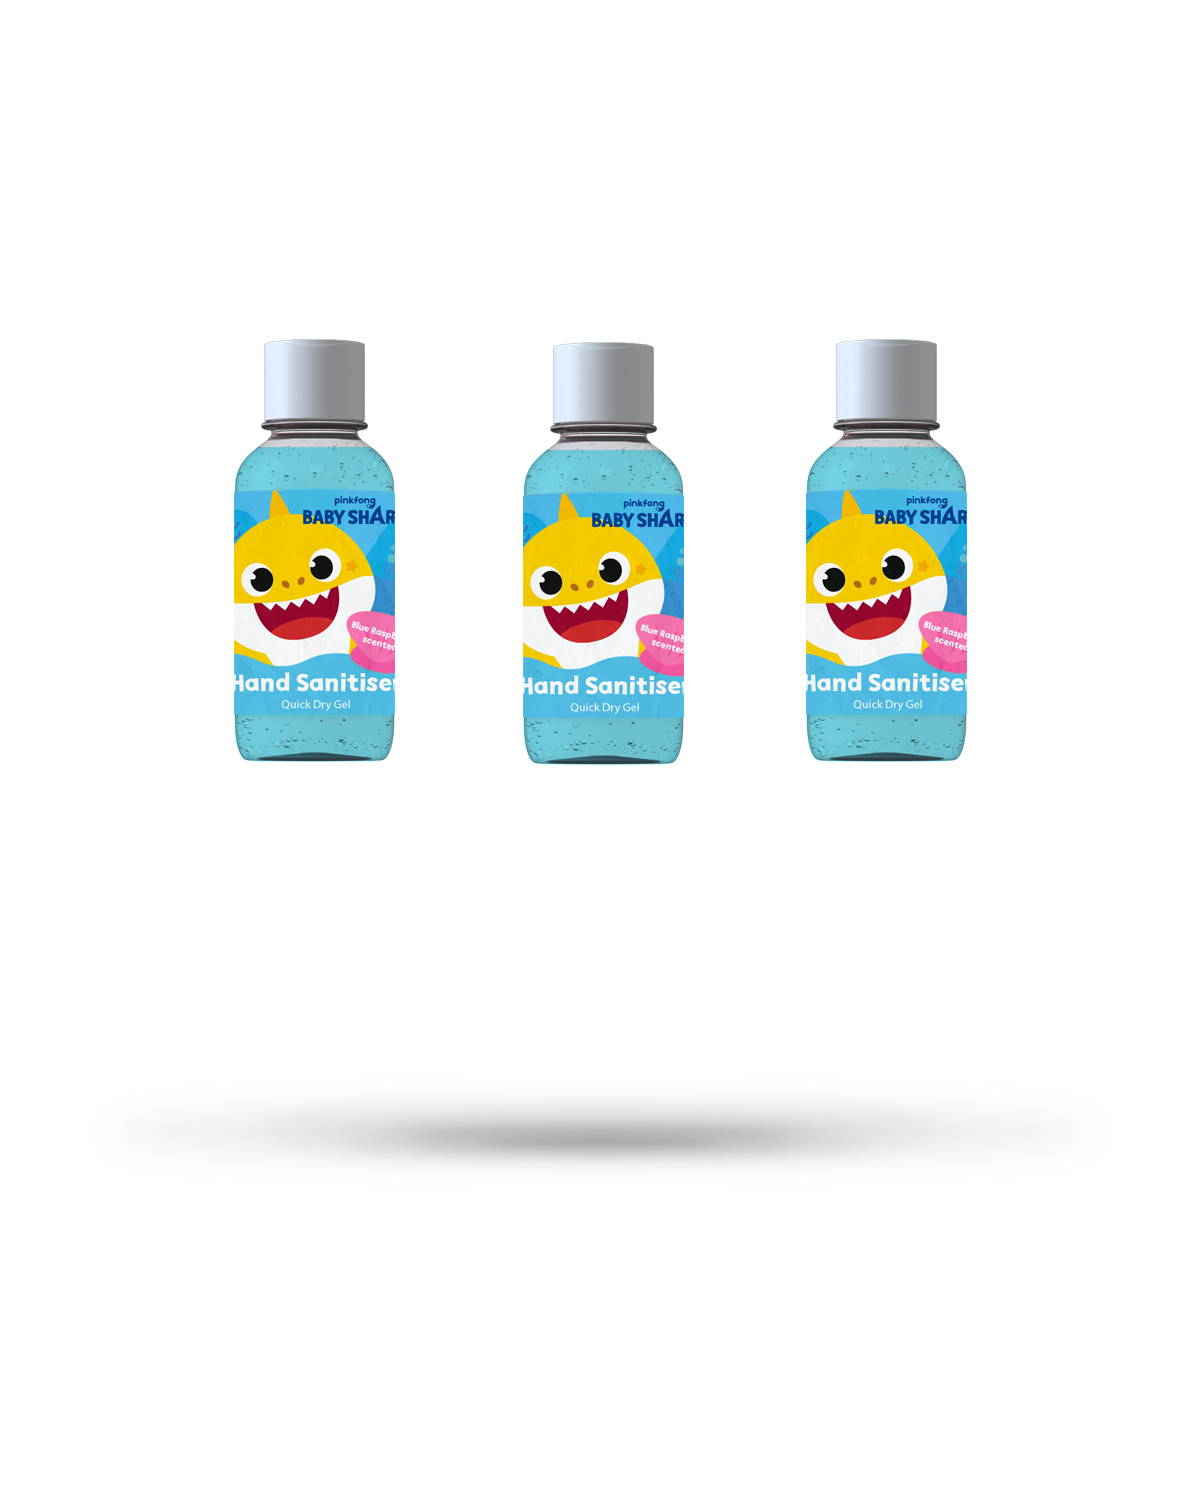 3 x 50ml Baby Shark blue raspberry scented hand sanitiser gel bundle from Vital Life